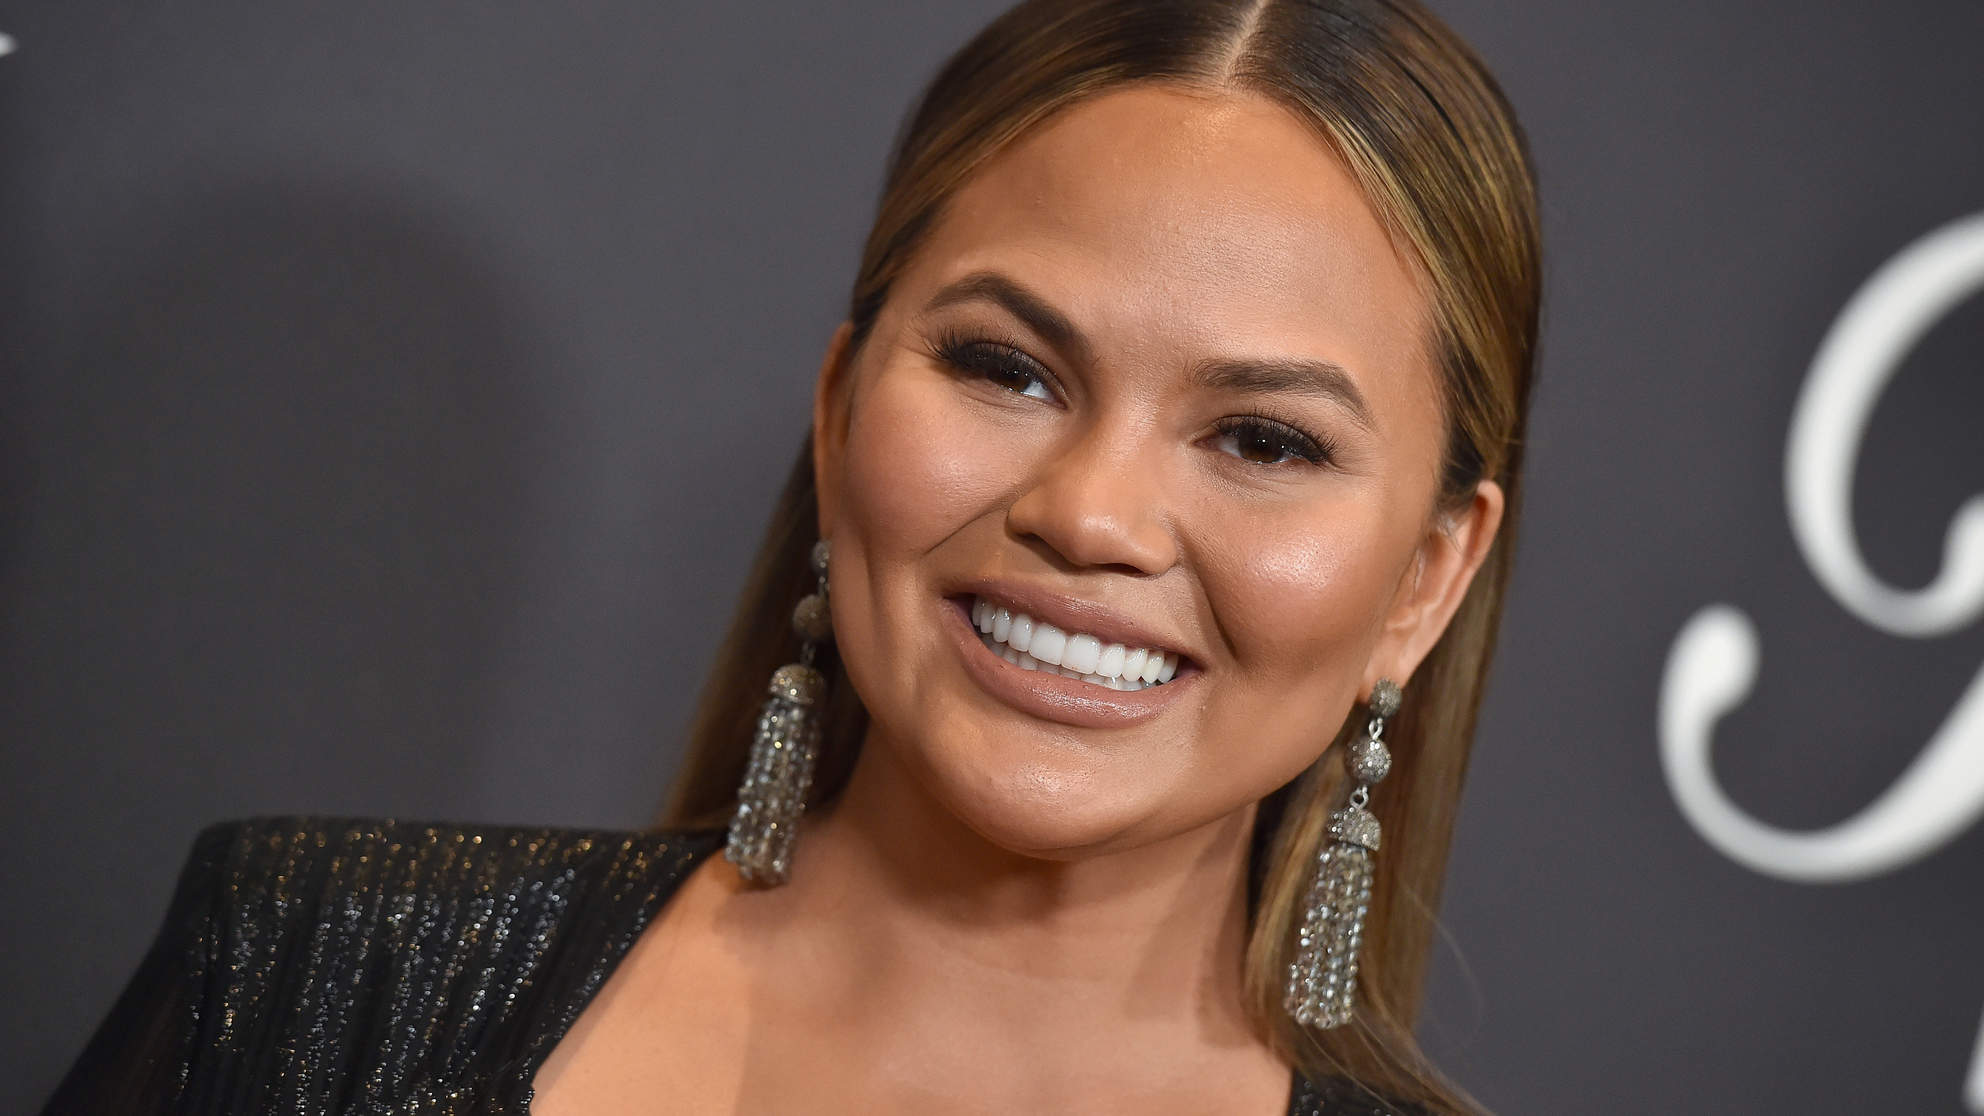 Chrissy Teigen Celebrated Going Gray on Twitter—and Now Women Are Sharing Their Own Gray Hair Selfies